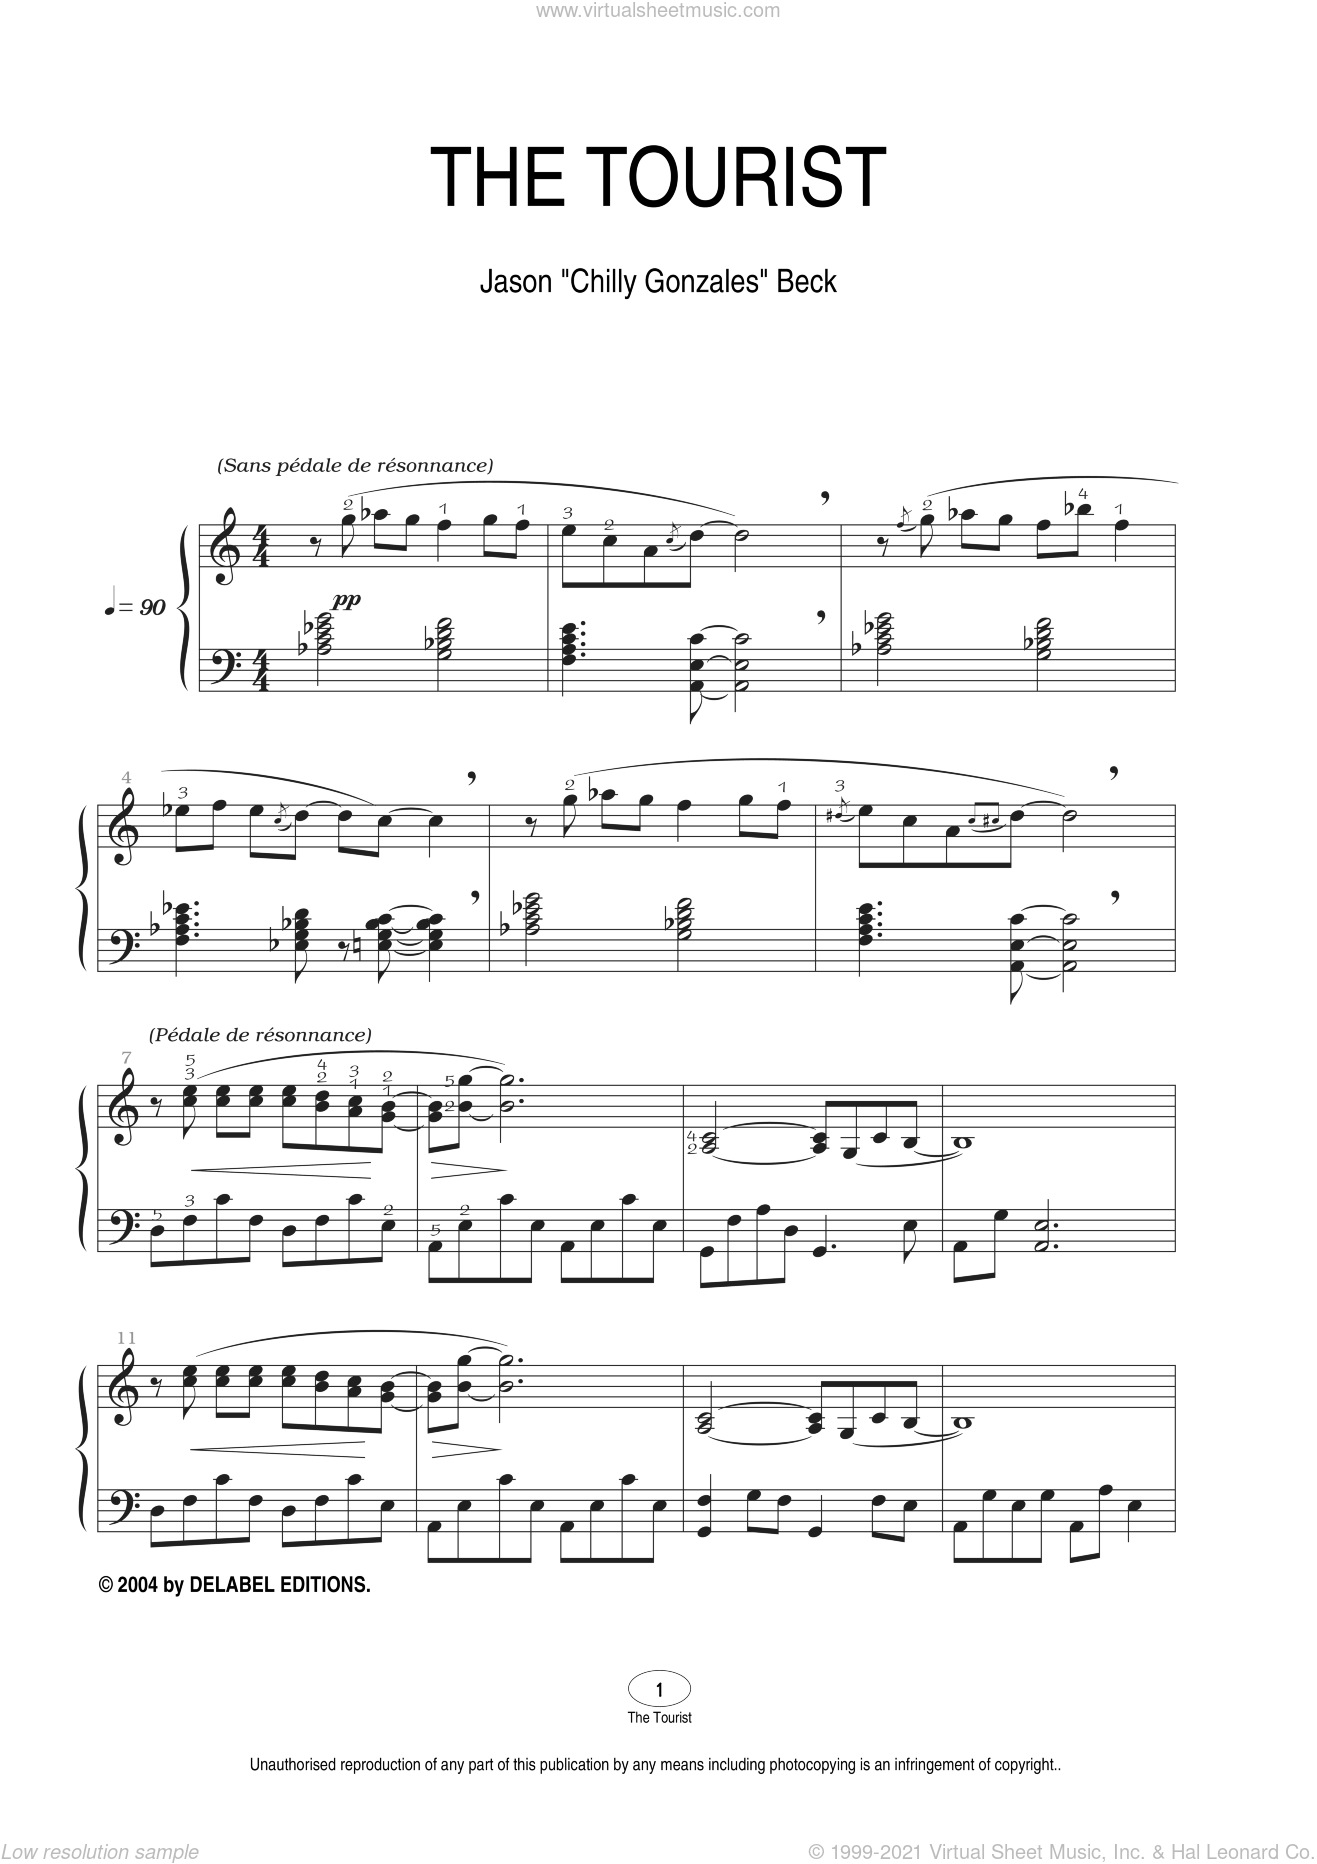 The Tourist sheet music for piano solo by Chilly Gonzales